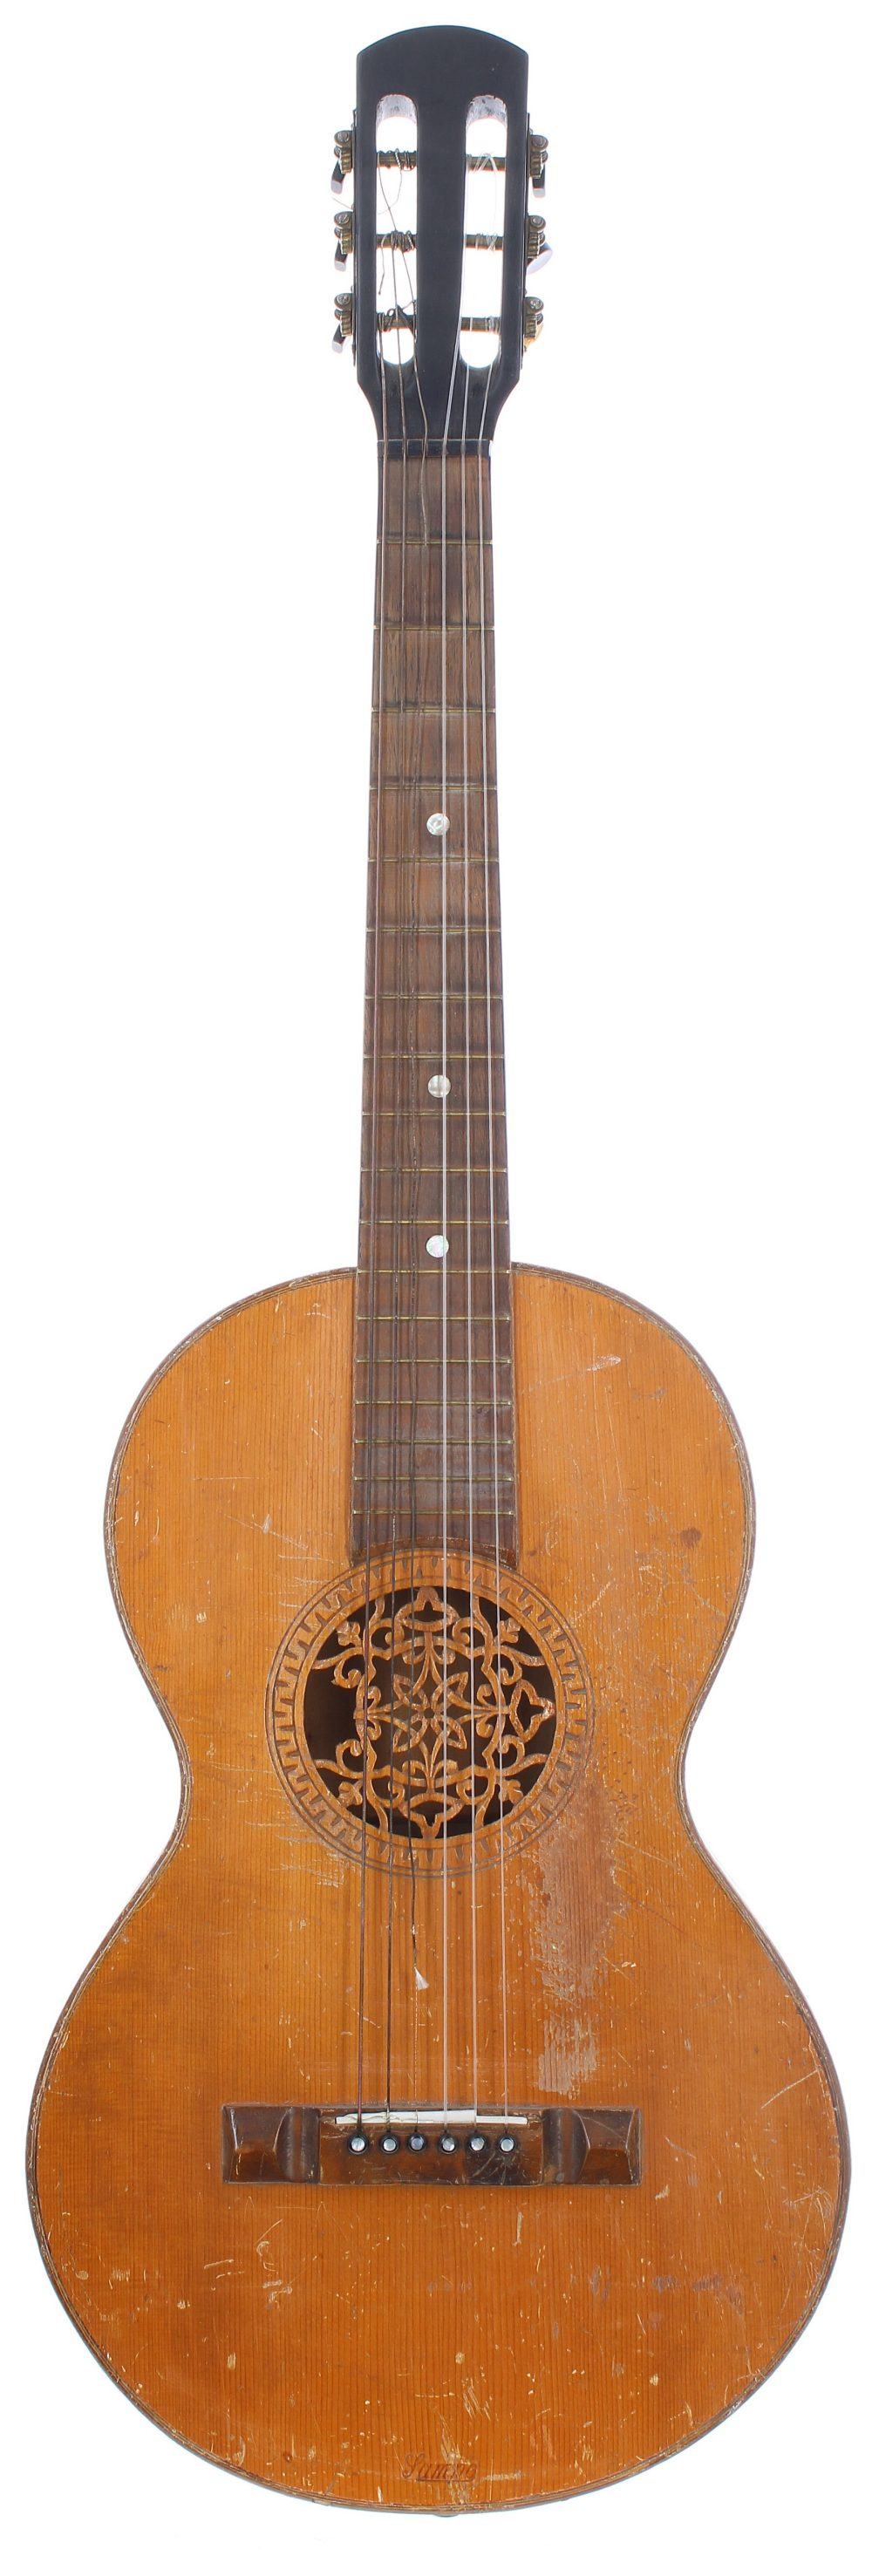 Early 20th century German parlour guitar in need of some restoration, with carved sound hole